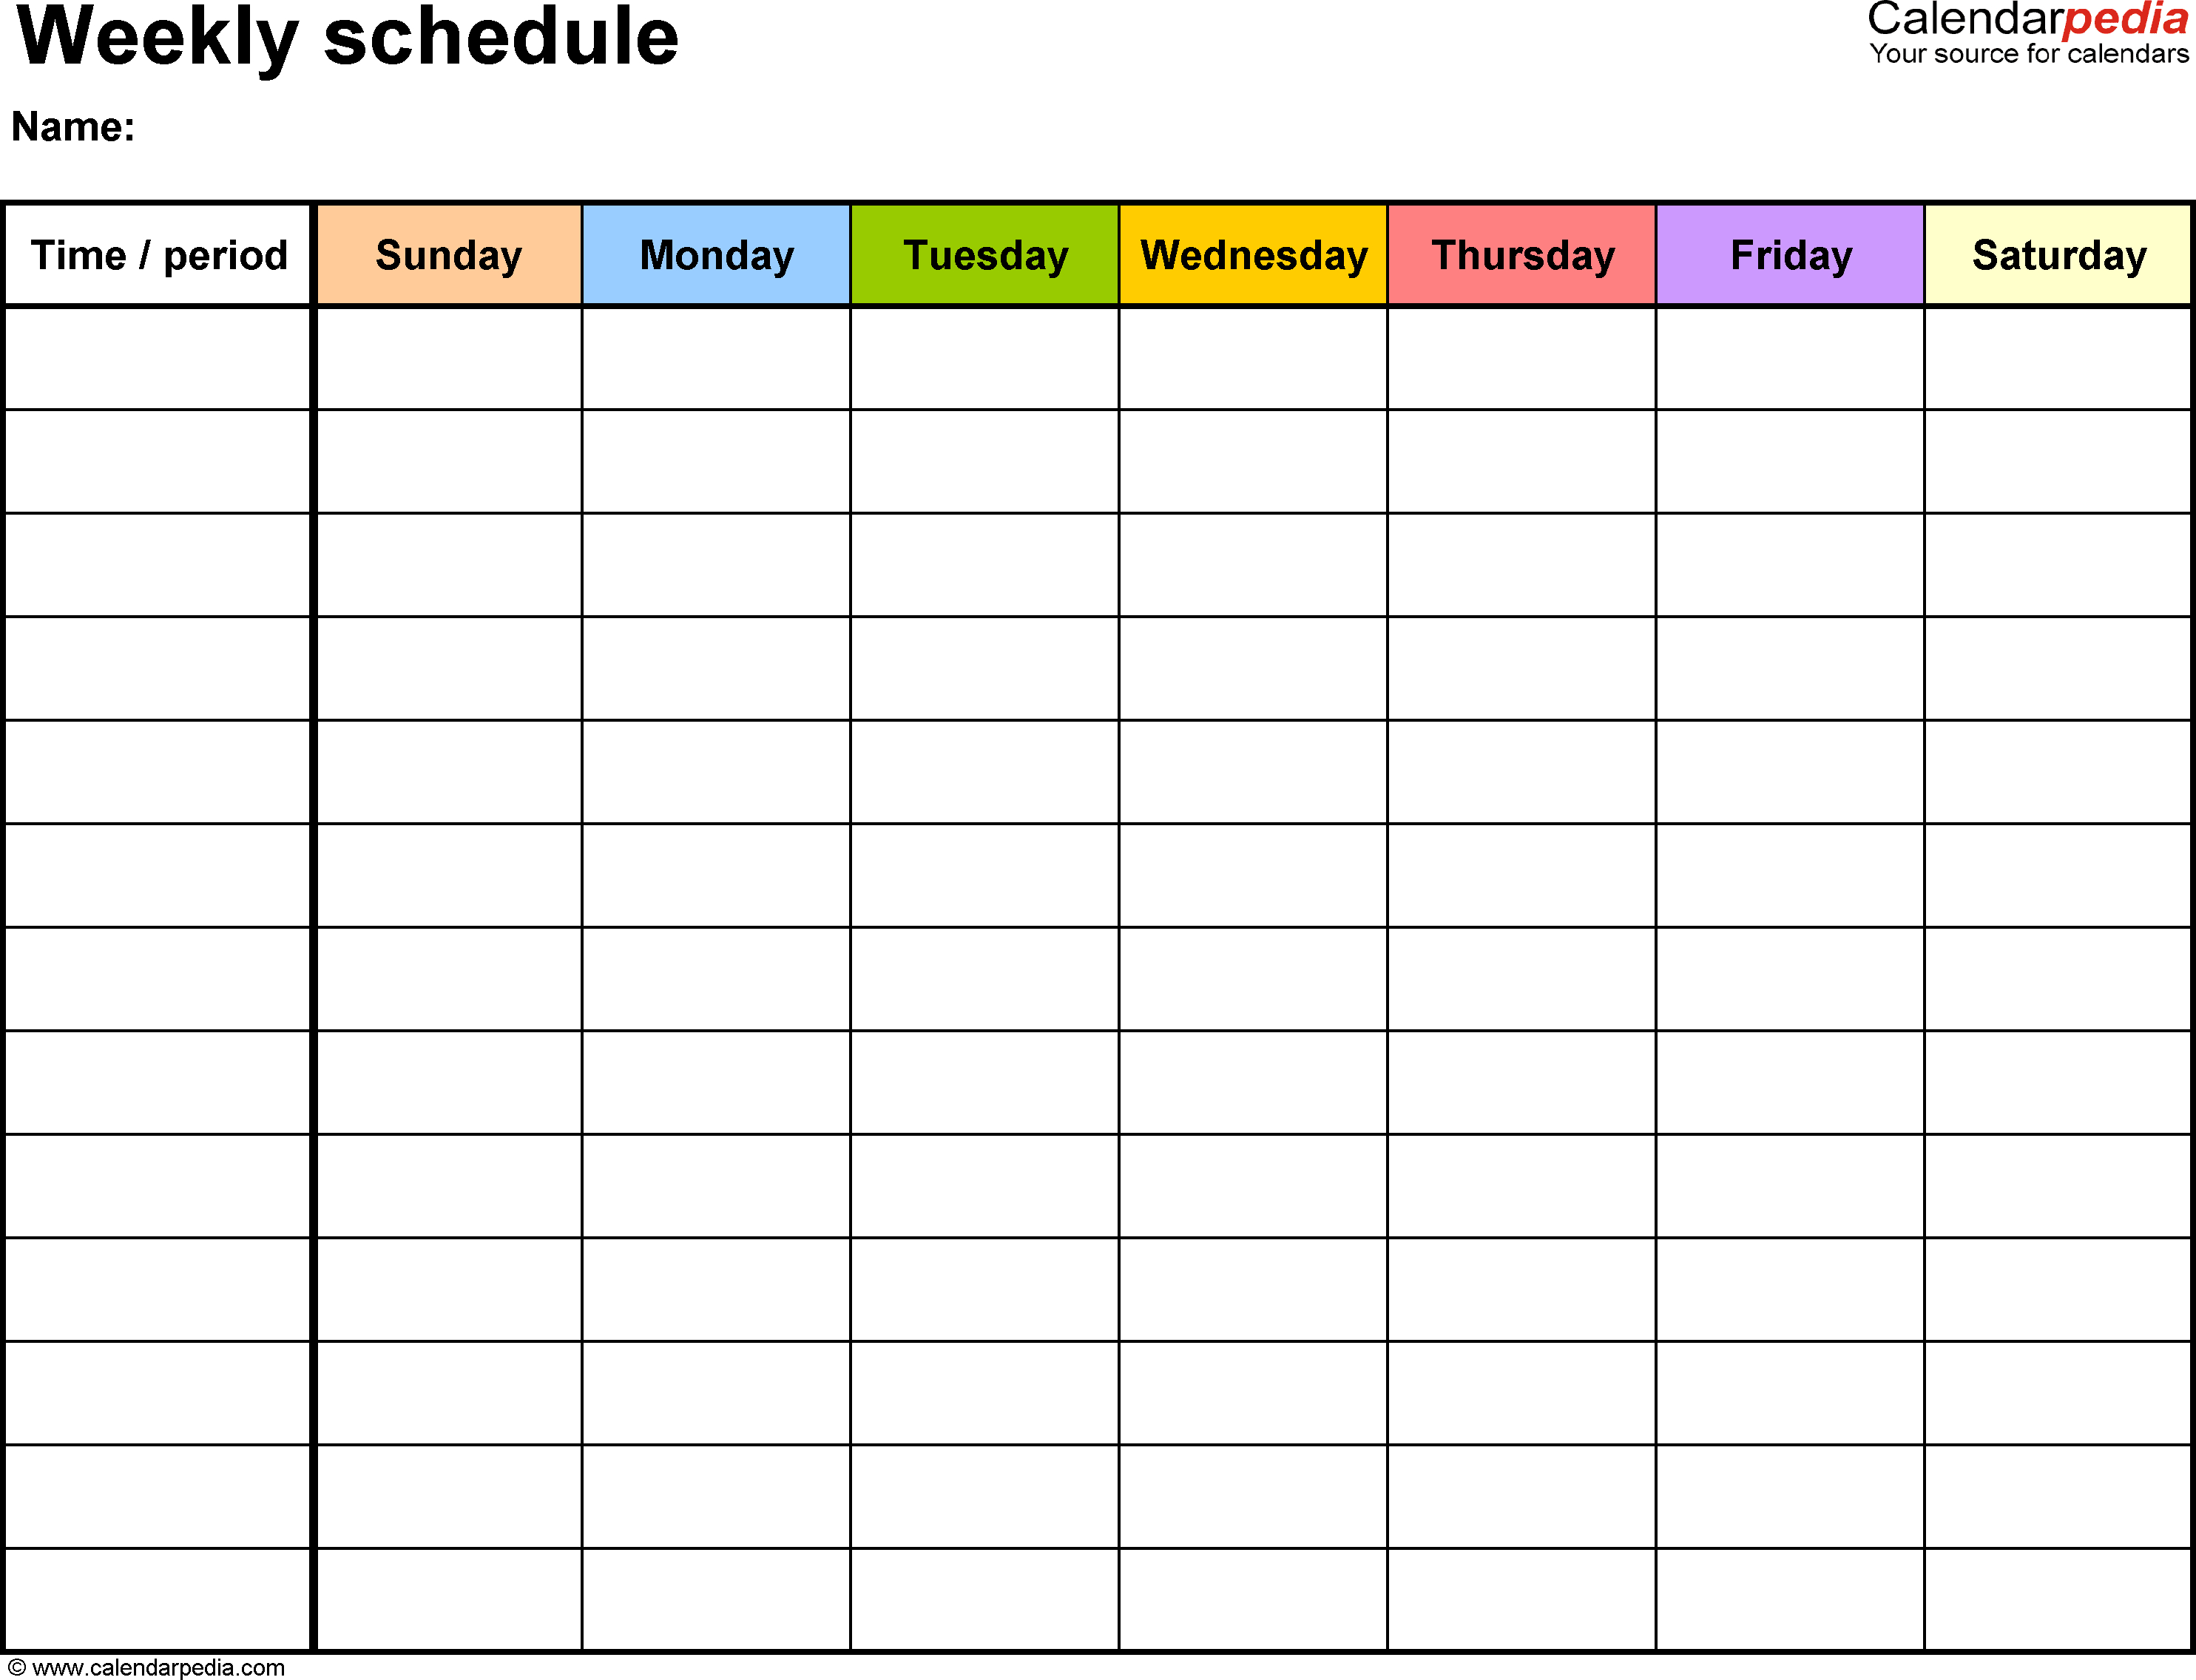 Hourly Spreadsheet In Free Weekly Schedule Templates For Excel  18 Templates